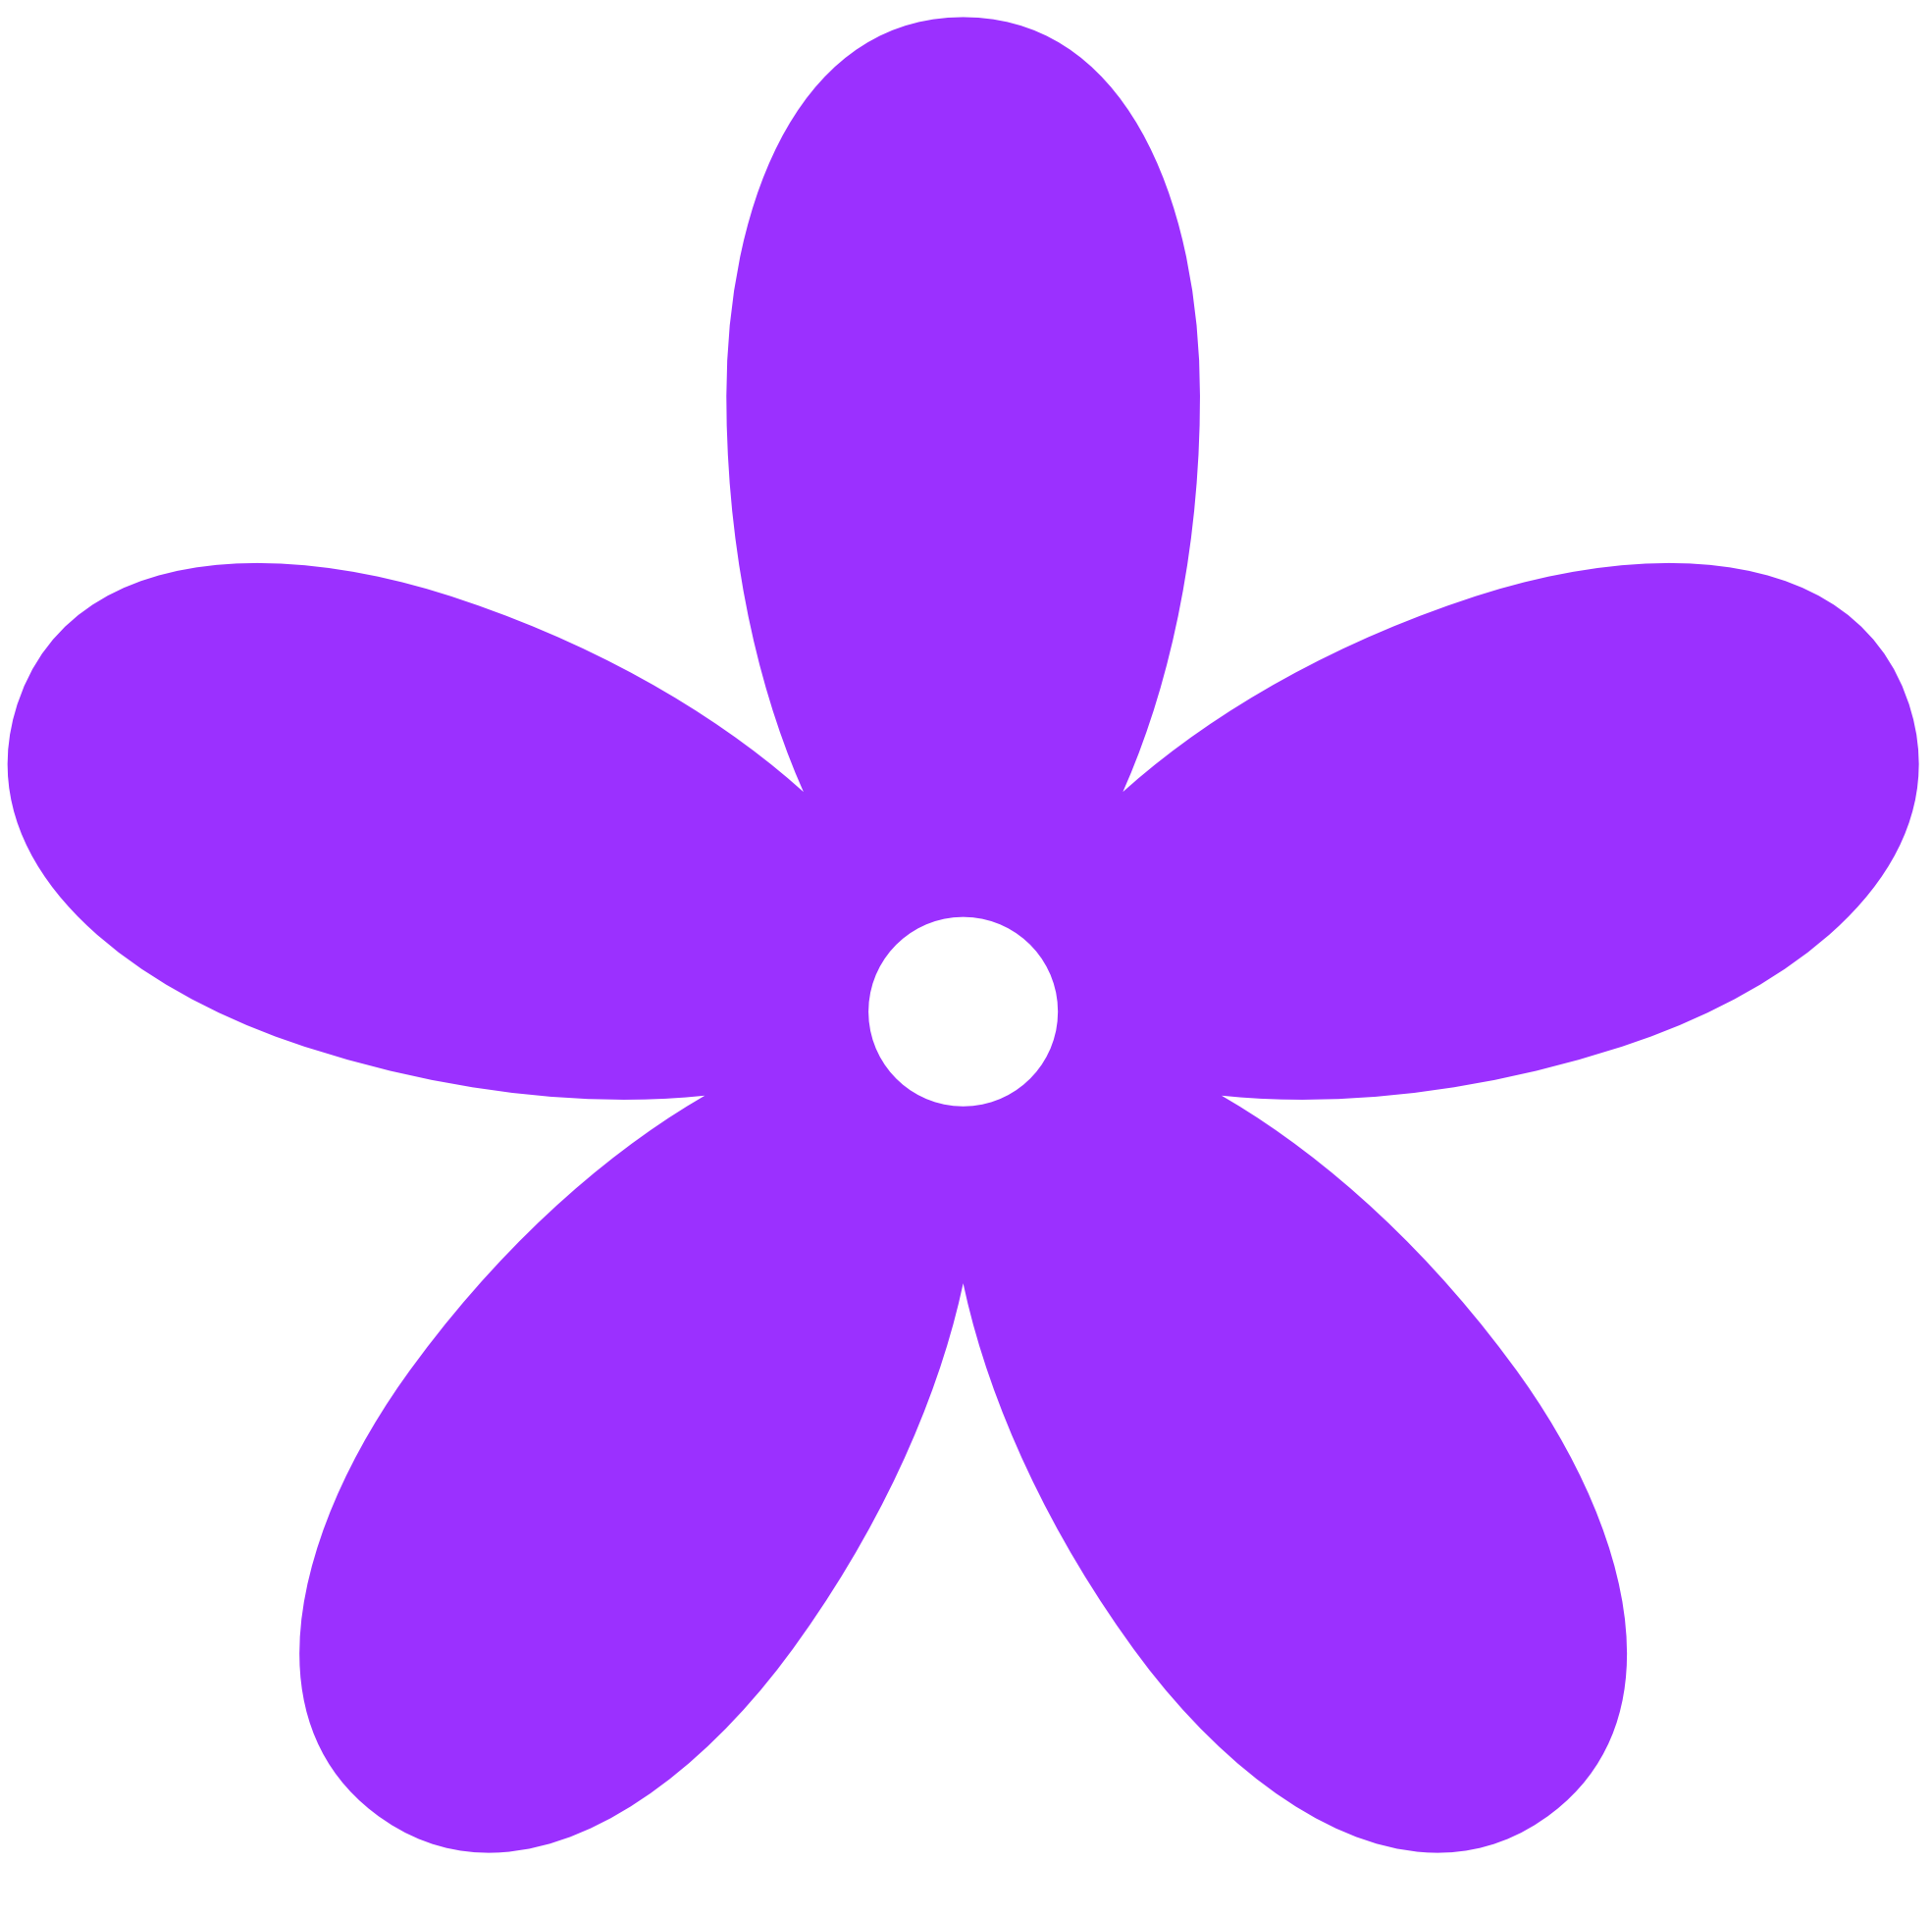 Retro Flower Clipart.